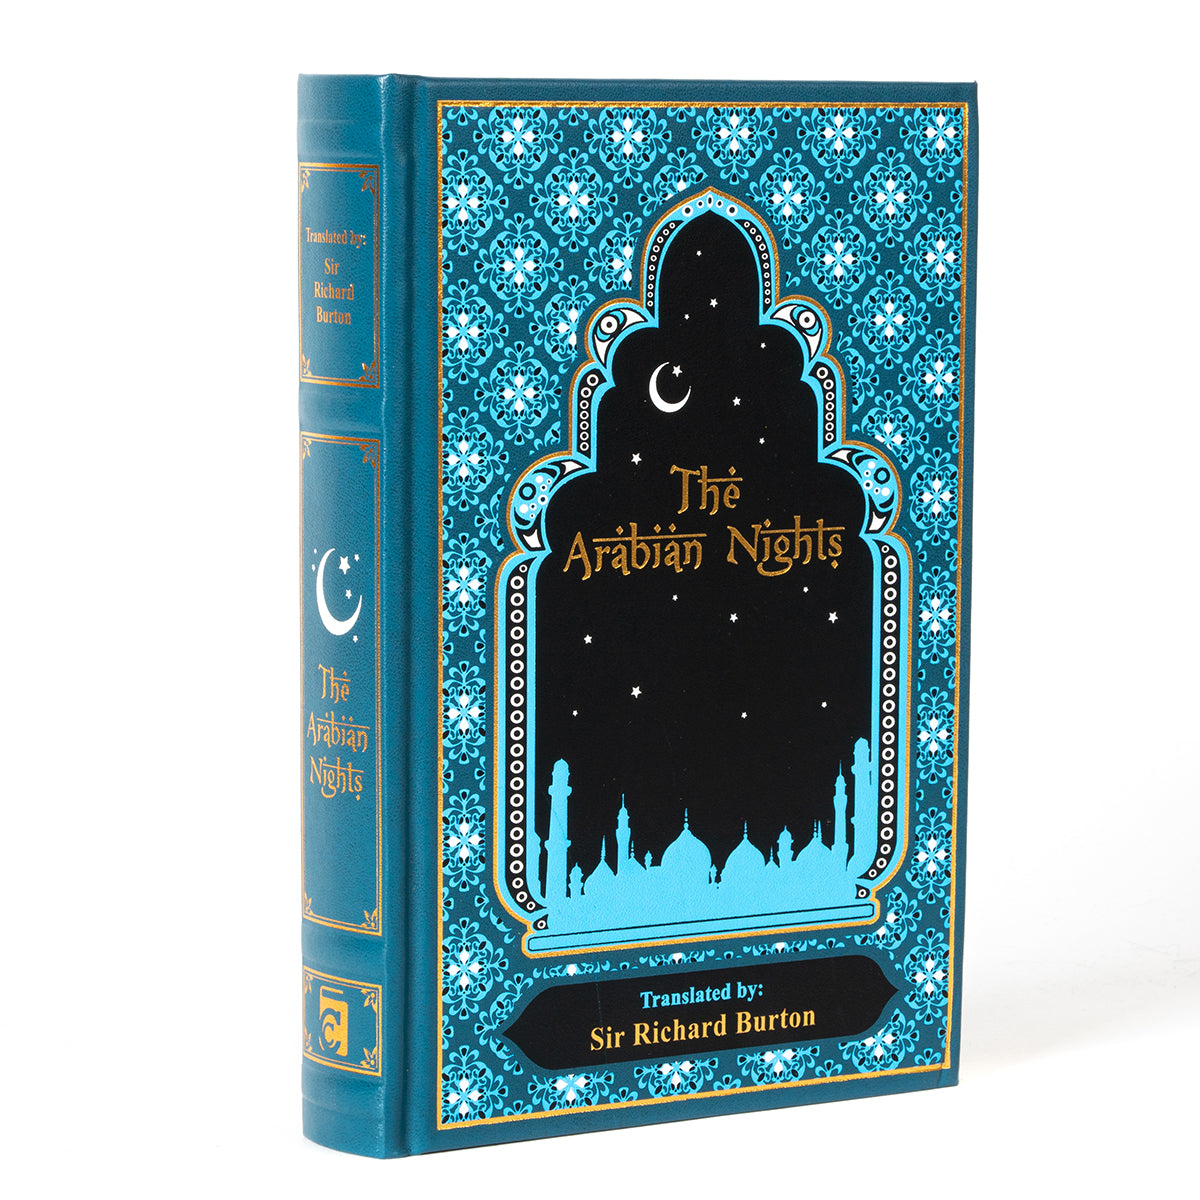 The Arabian Nights by Sir Richard Burton